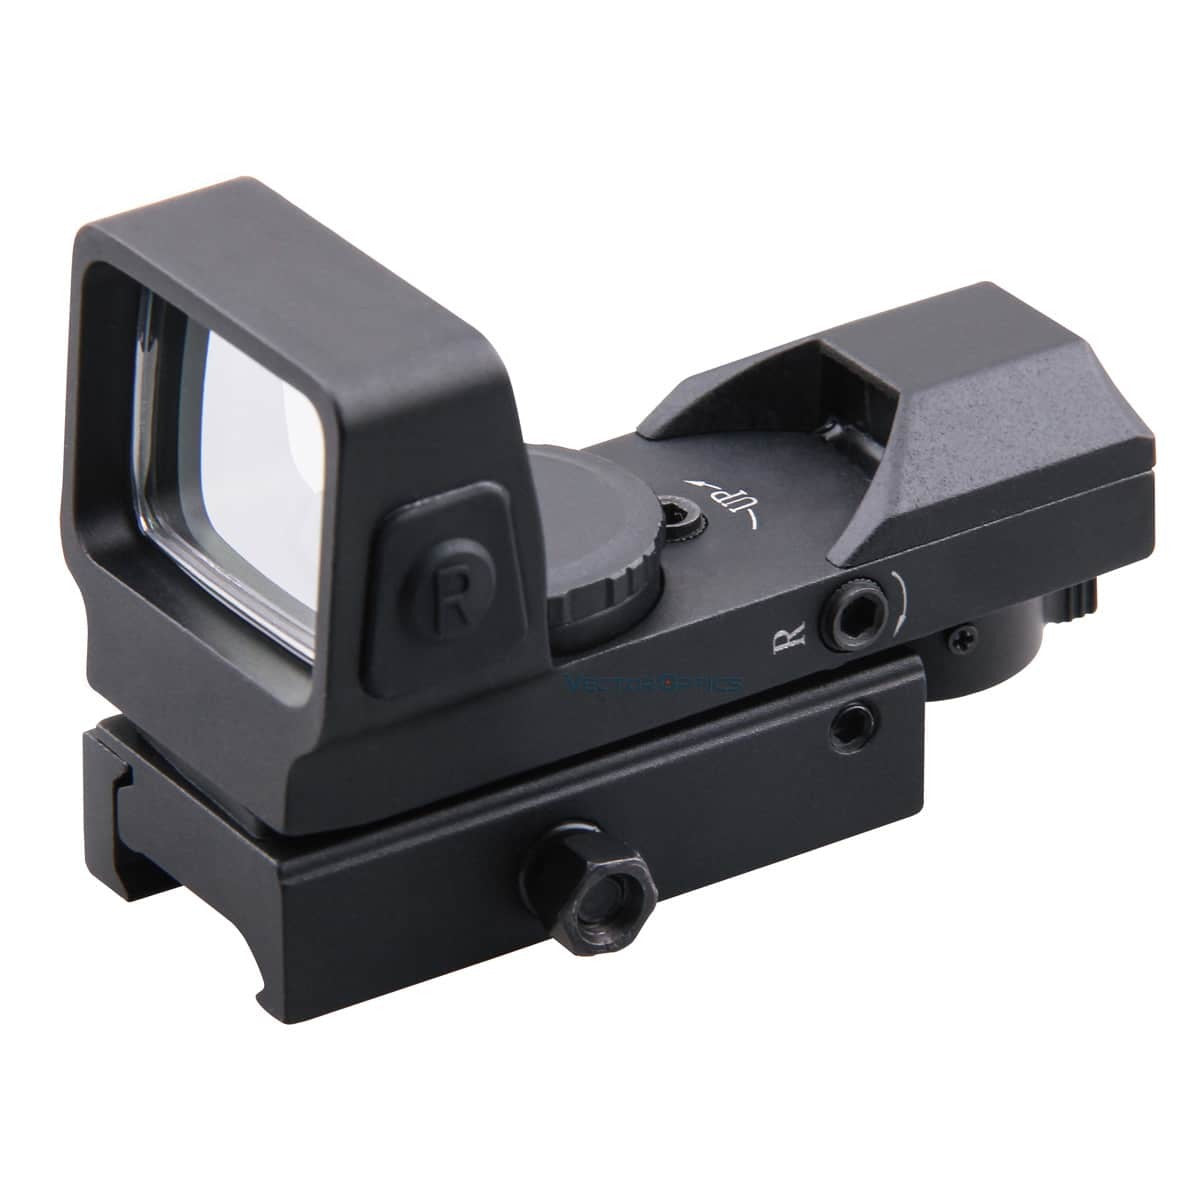 Vector Optics Sable 1x25x34 Tactical 4 Reticles Green Red Dot Sight Quick Release Digital Control Gun Scope QD Weaver Mount